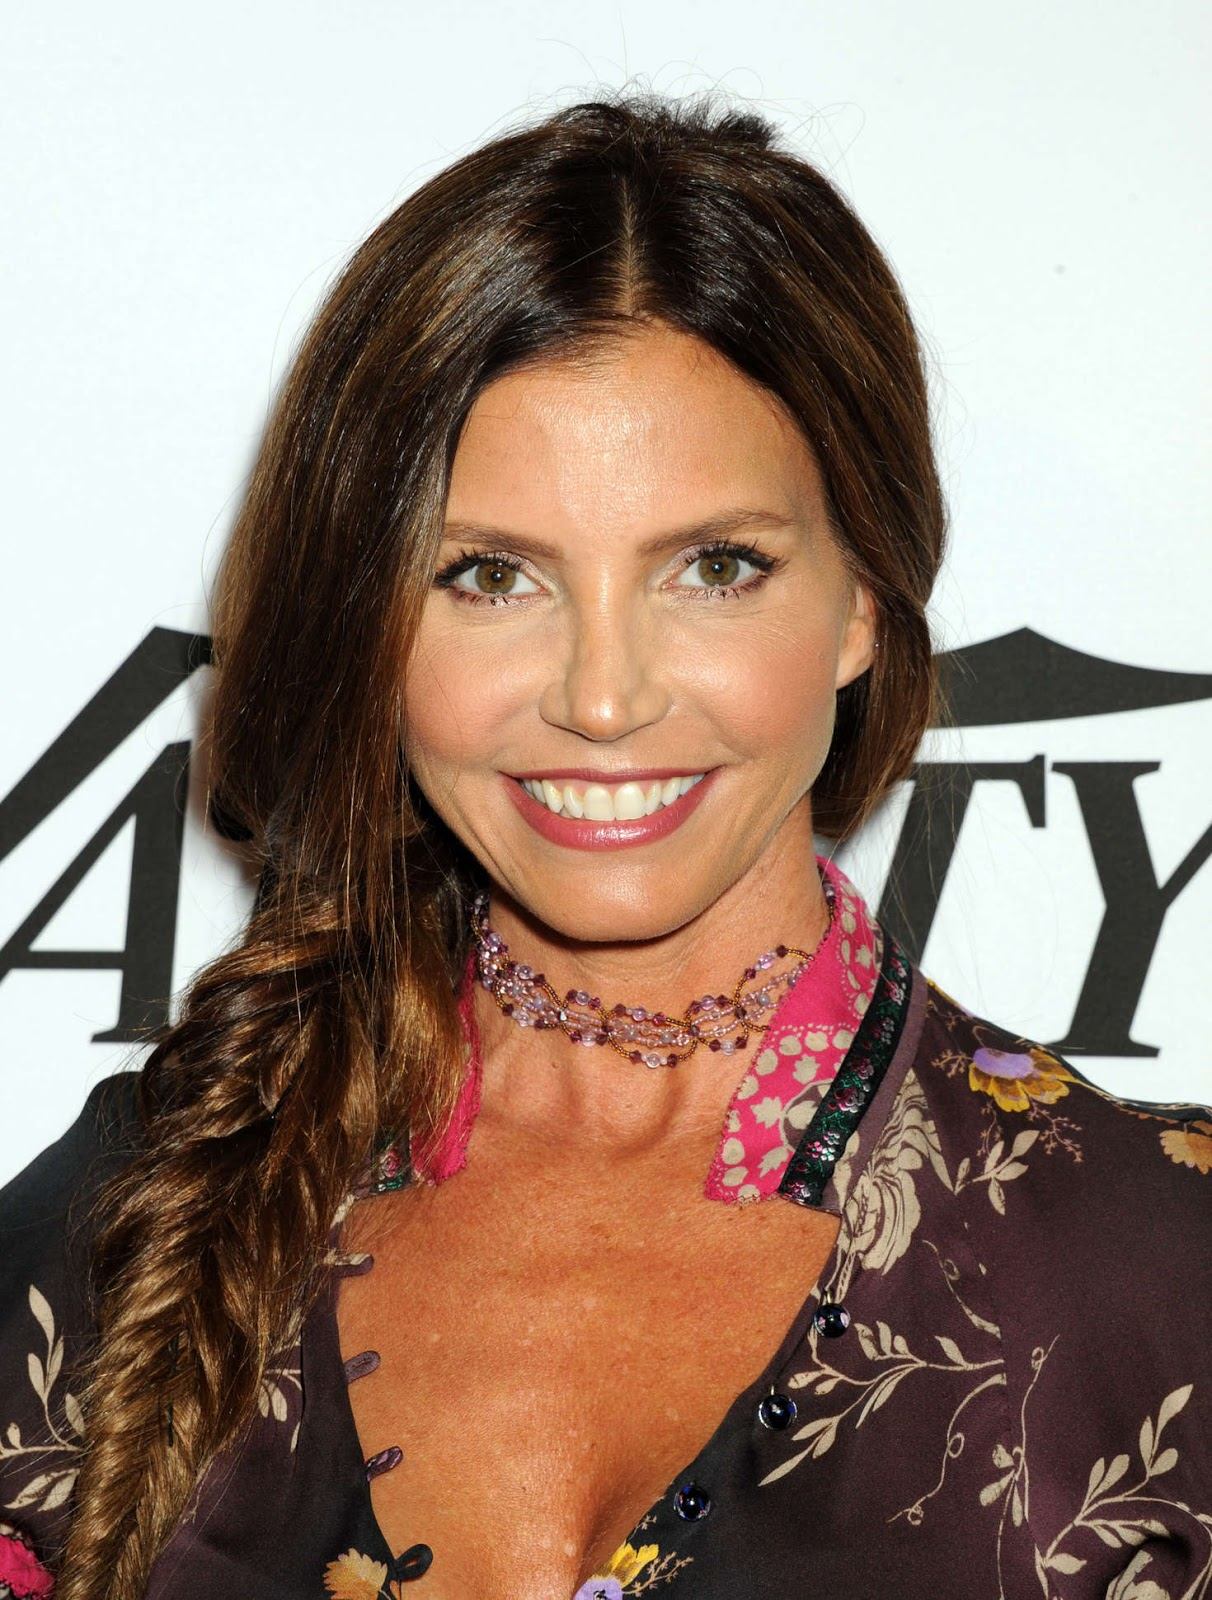 Charisma Carpenter nude (89 photo), photo Ass, YouTube, swimsuit 2019